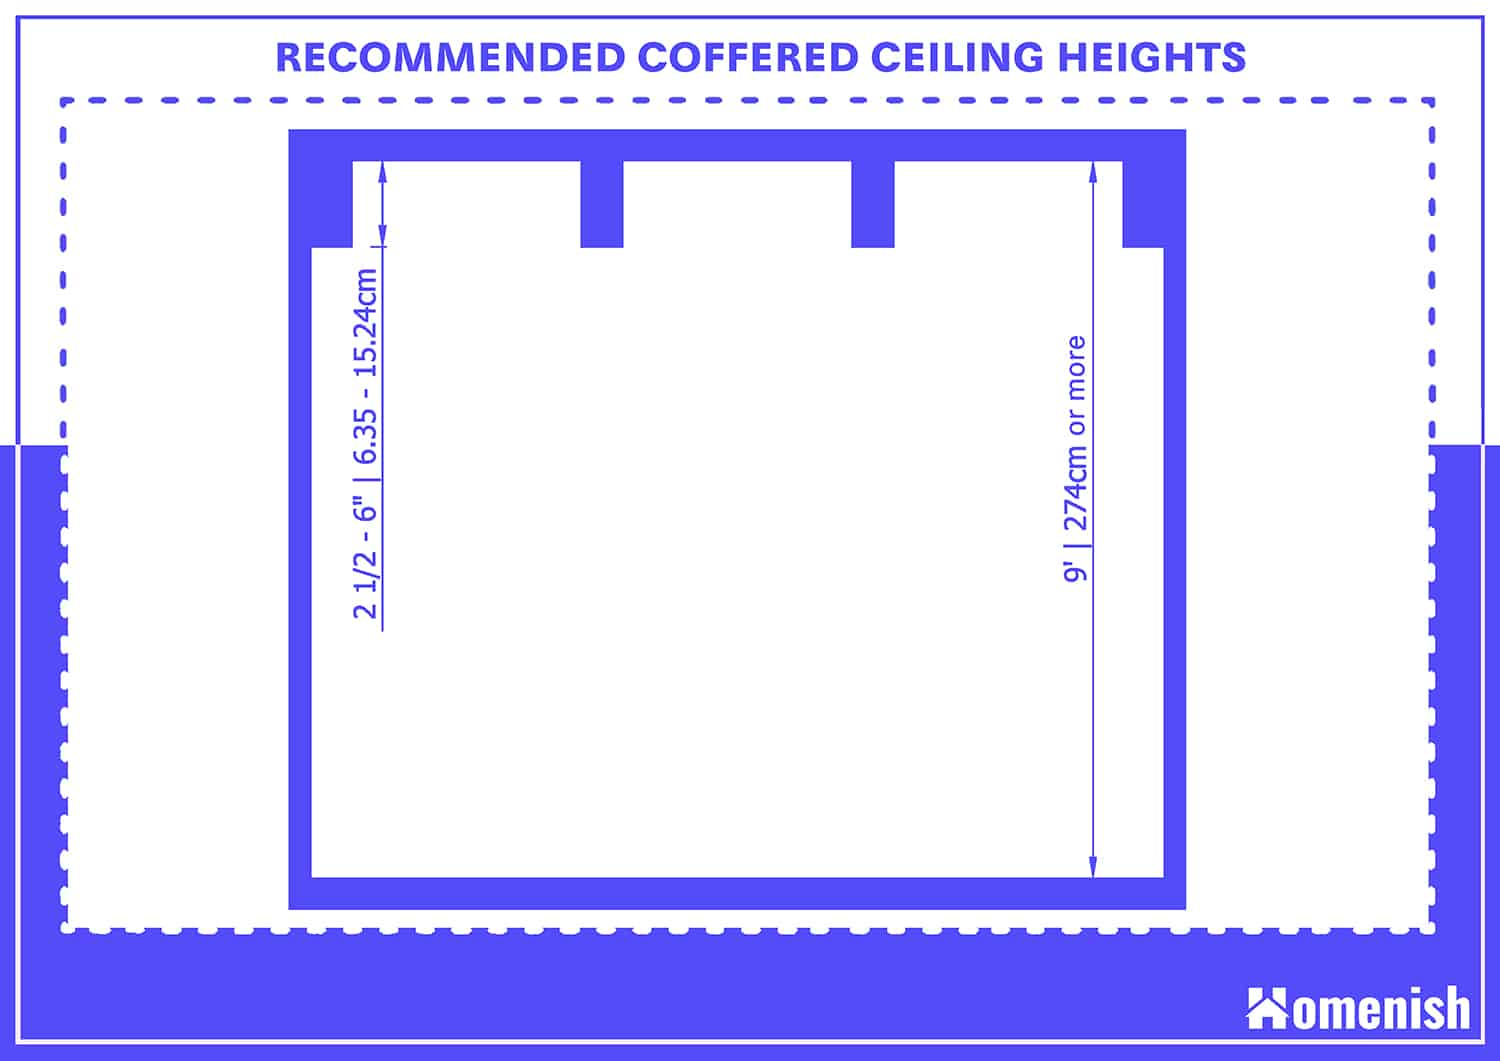 Recommended Coffered Ceiling Heights